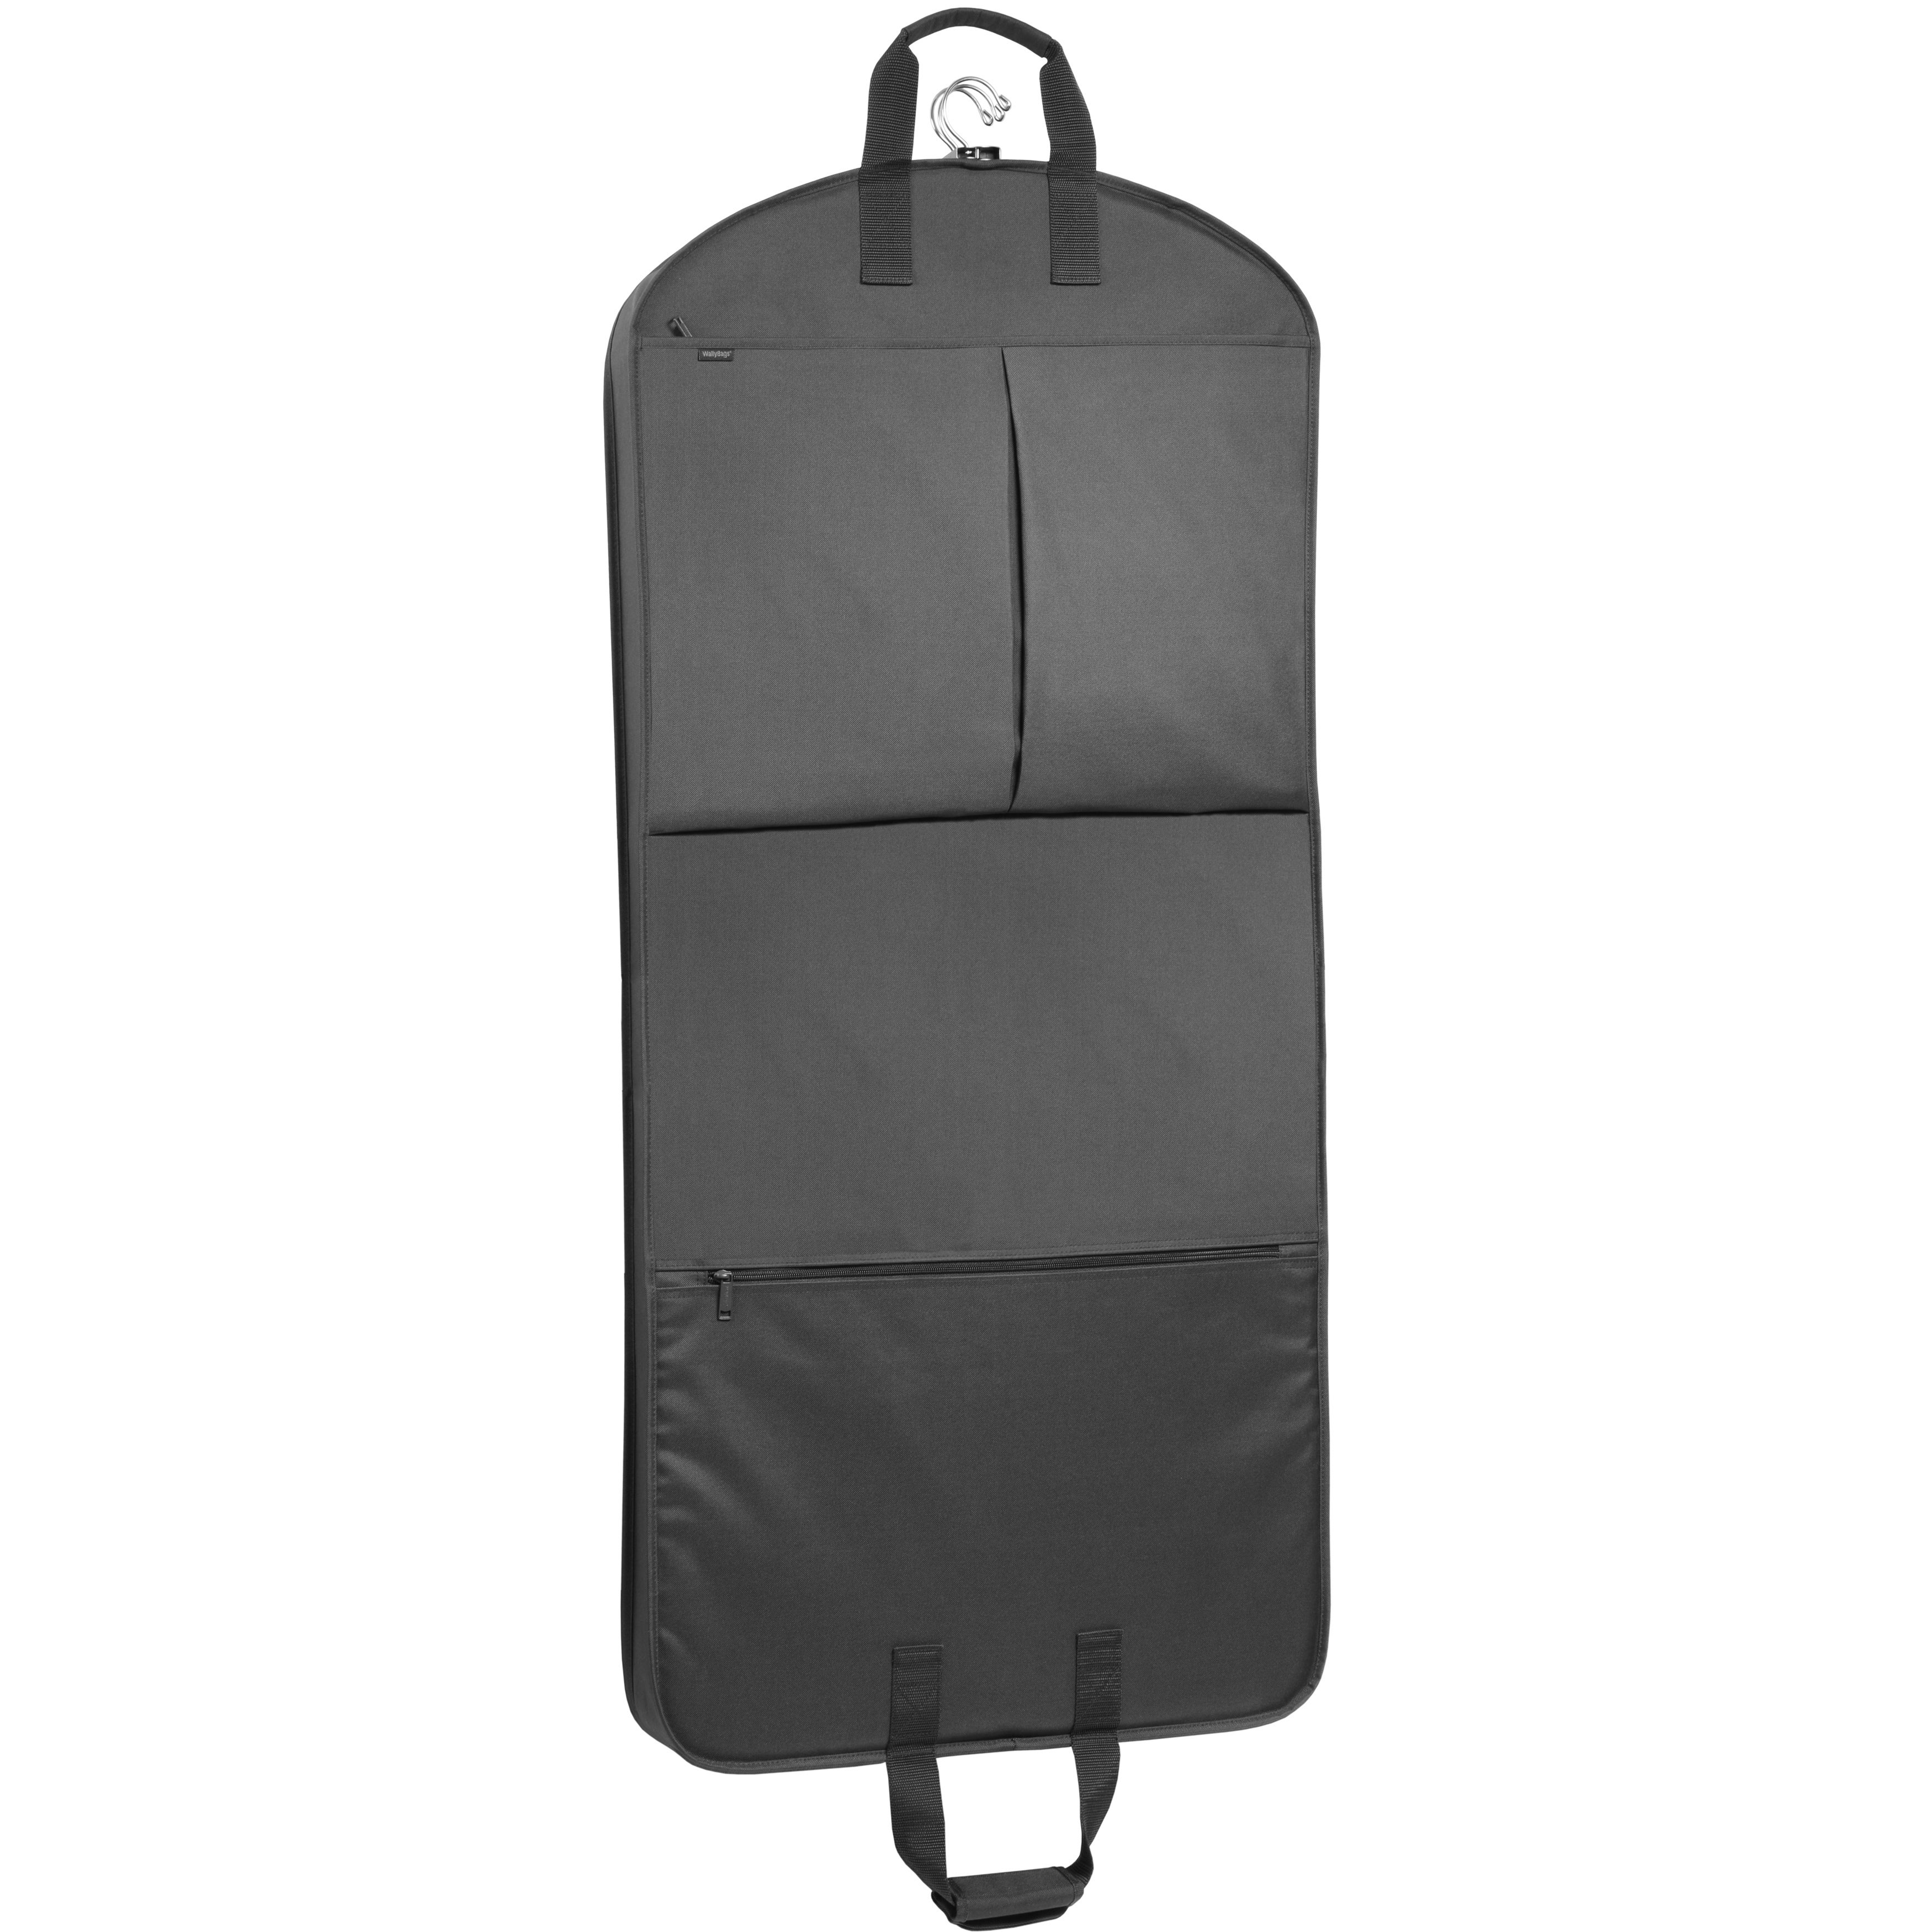 Wallybags 52 Inch Garment Bag With